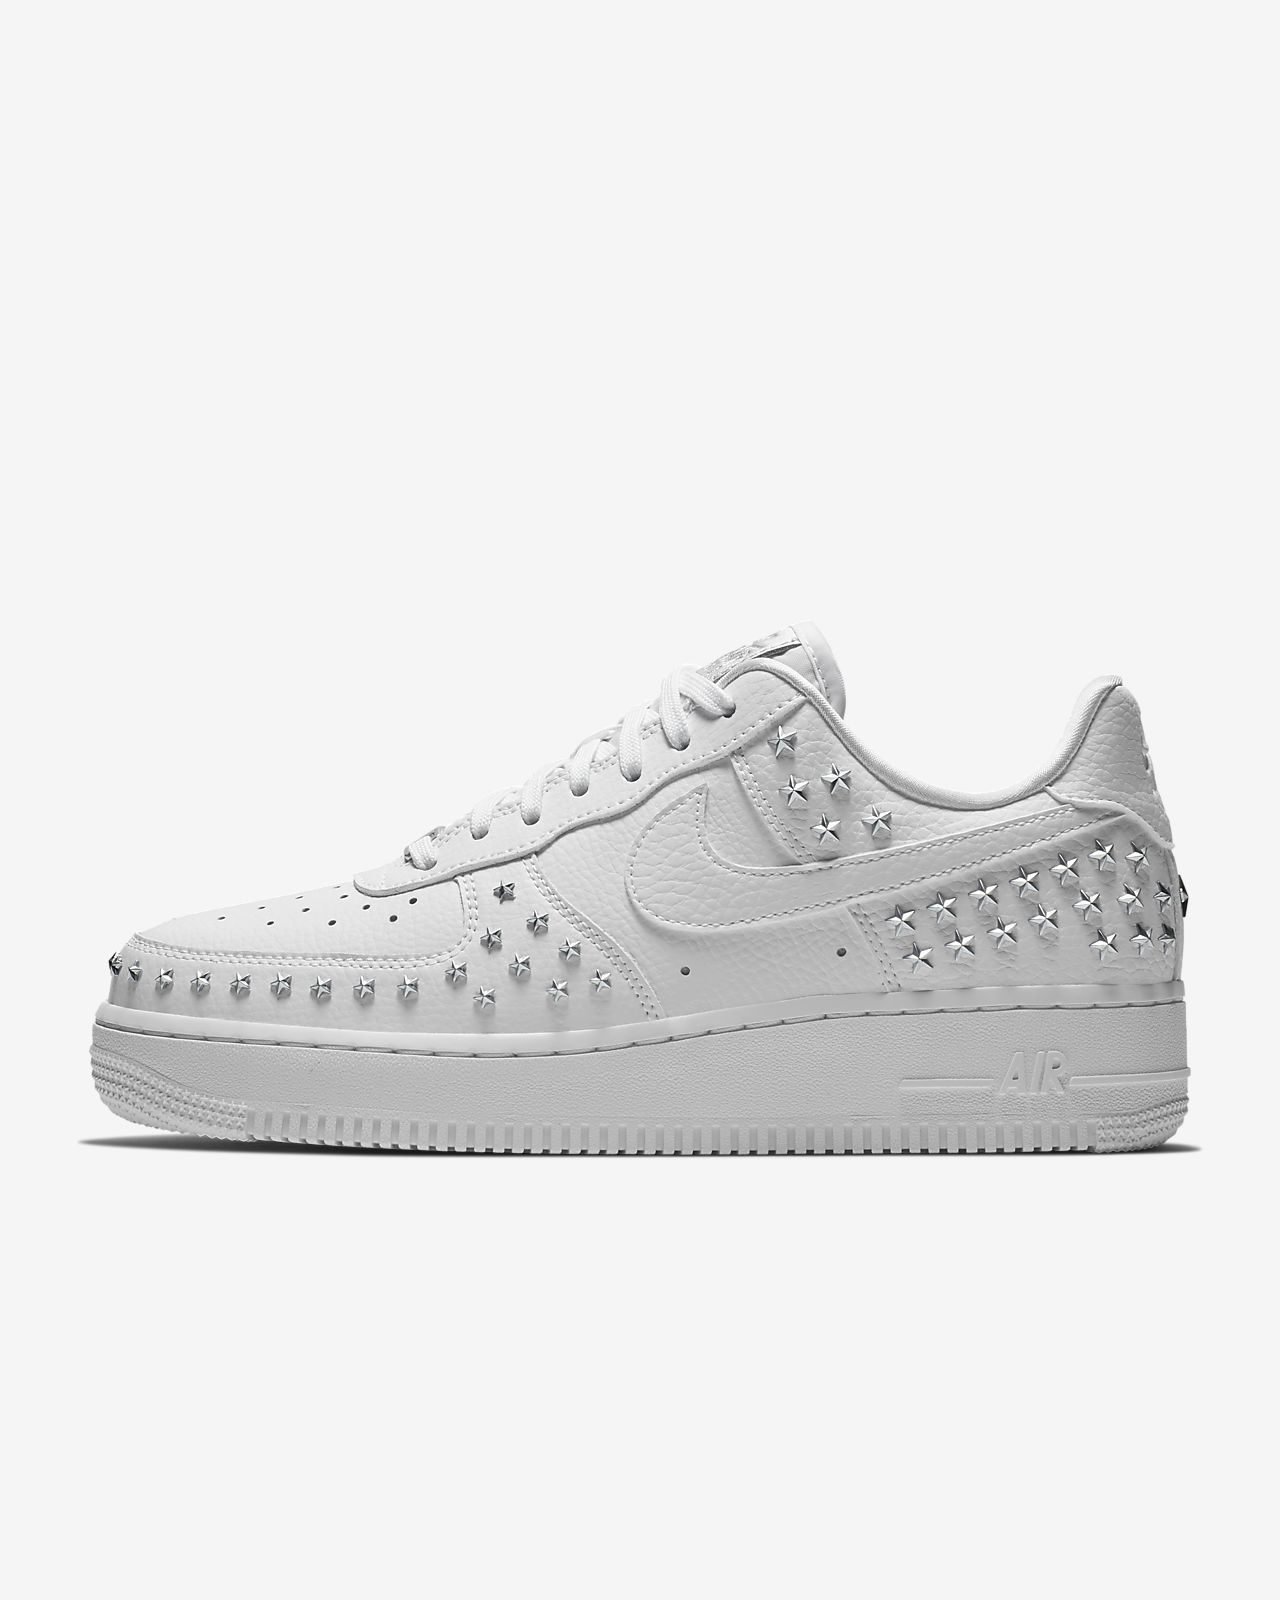 new style e24c5 ff2d8 Women s Shoe. Nike Air Force 1  07 XX Studded